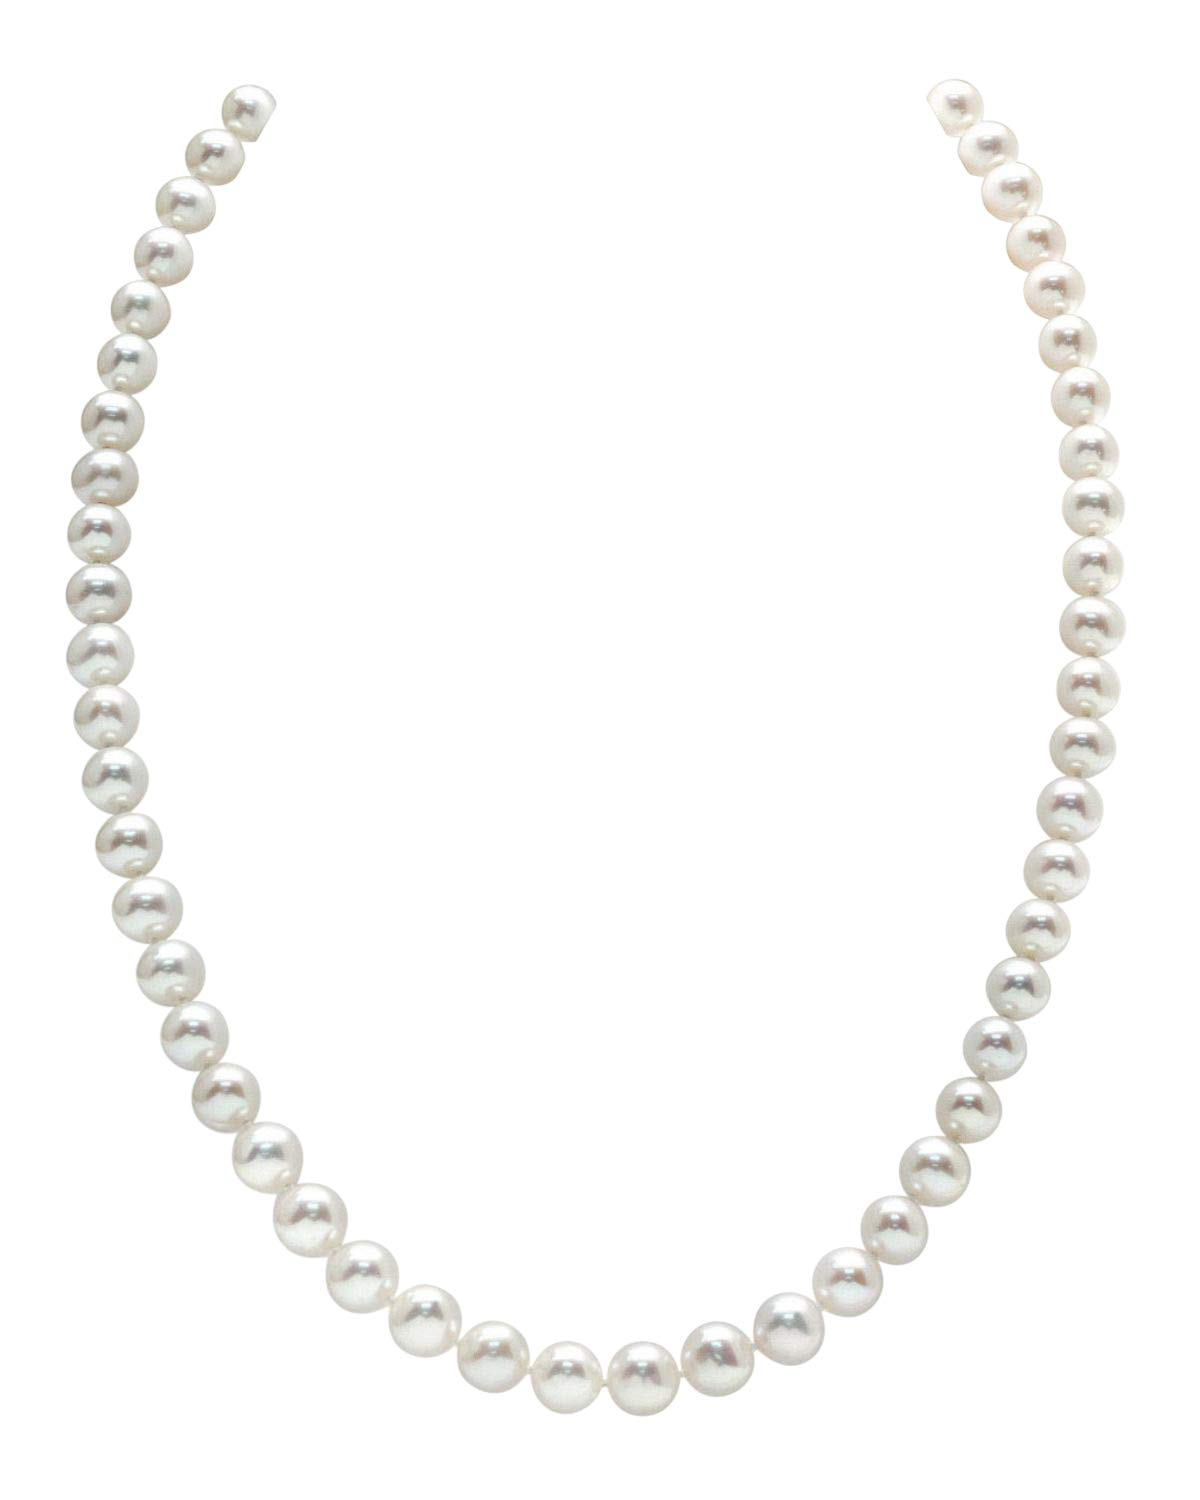 7-8mm Round White Freshwater Cultured Pearl Necklace, 20'' Matinee Length - AAA Quality by The Pearl Source